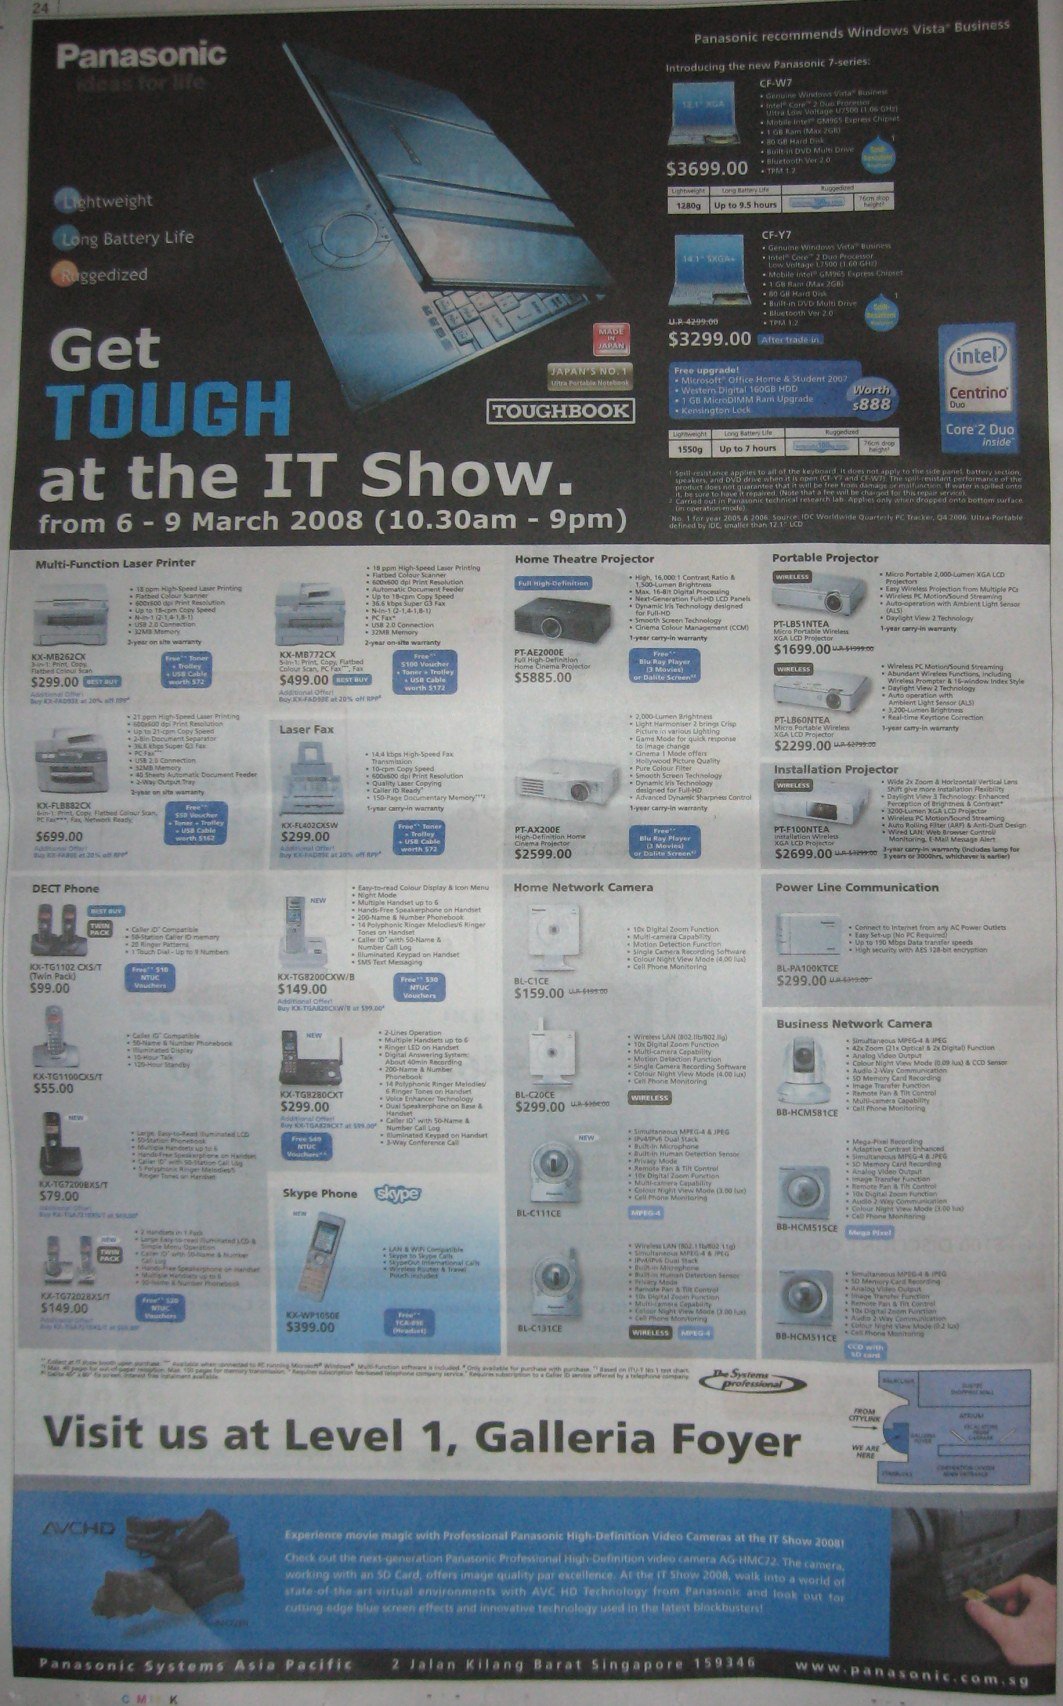 IT Show 2008 price list image brochure of Panasonic Printer Projector DECT Phone Camera Powerline